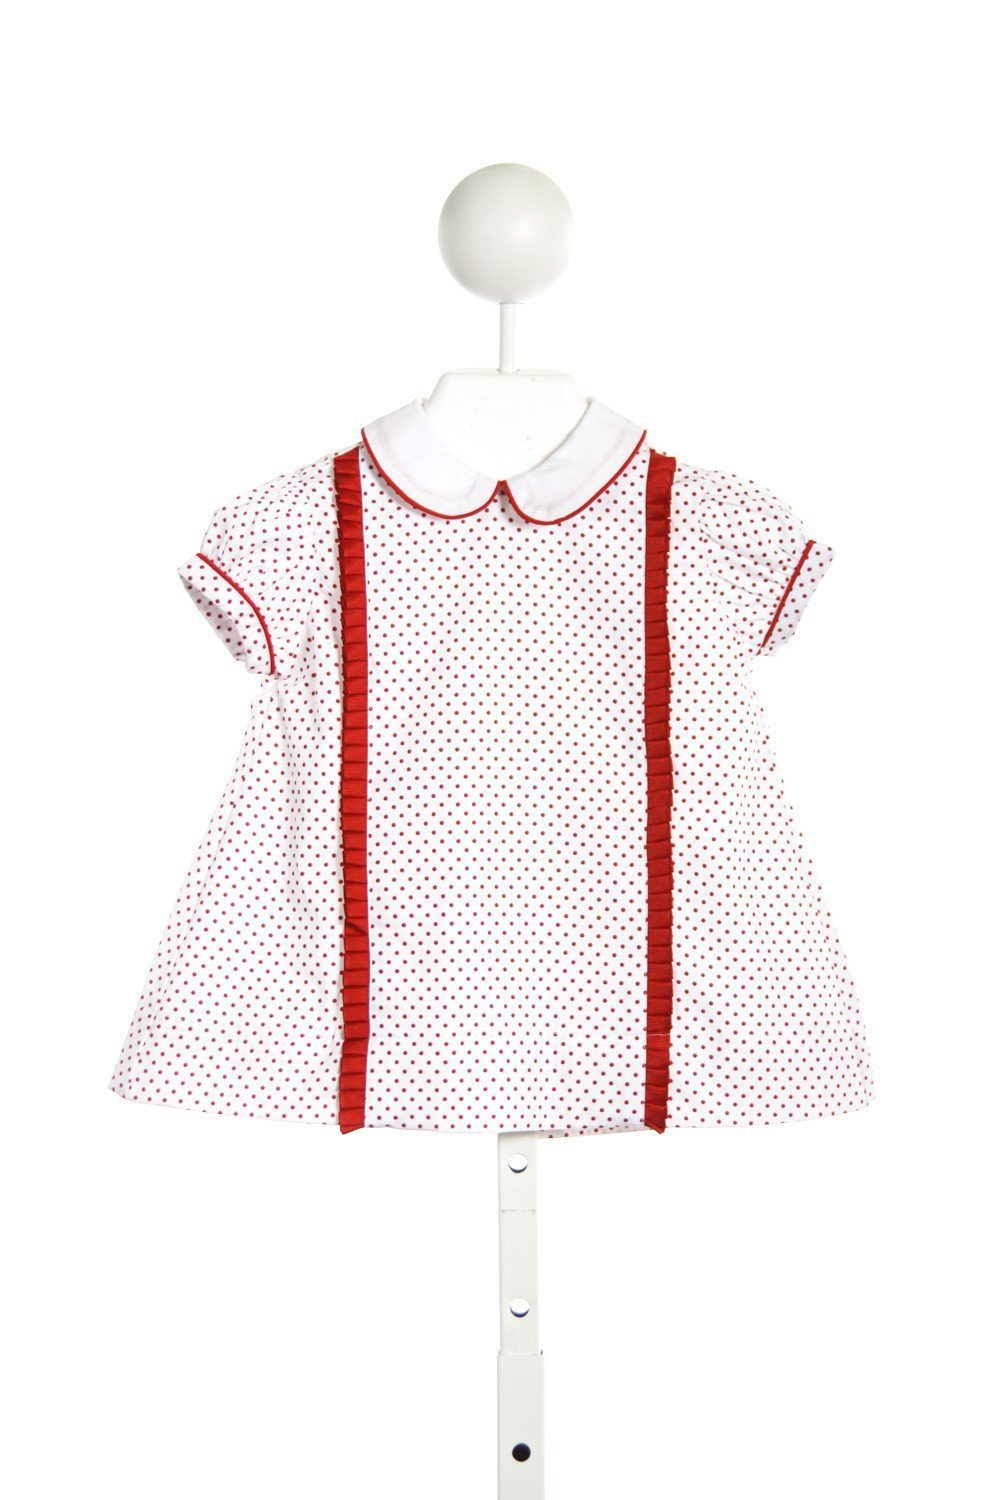 THREAD HEIRLOOM COMPANY TINY DOT TILLY DRESS WITH RED PLEATED RUFFLES